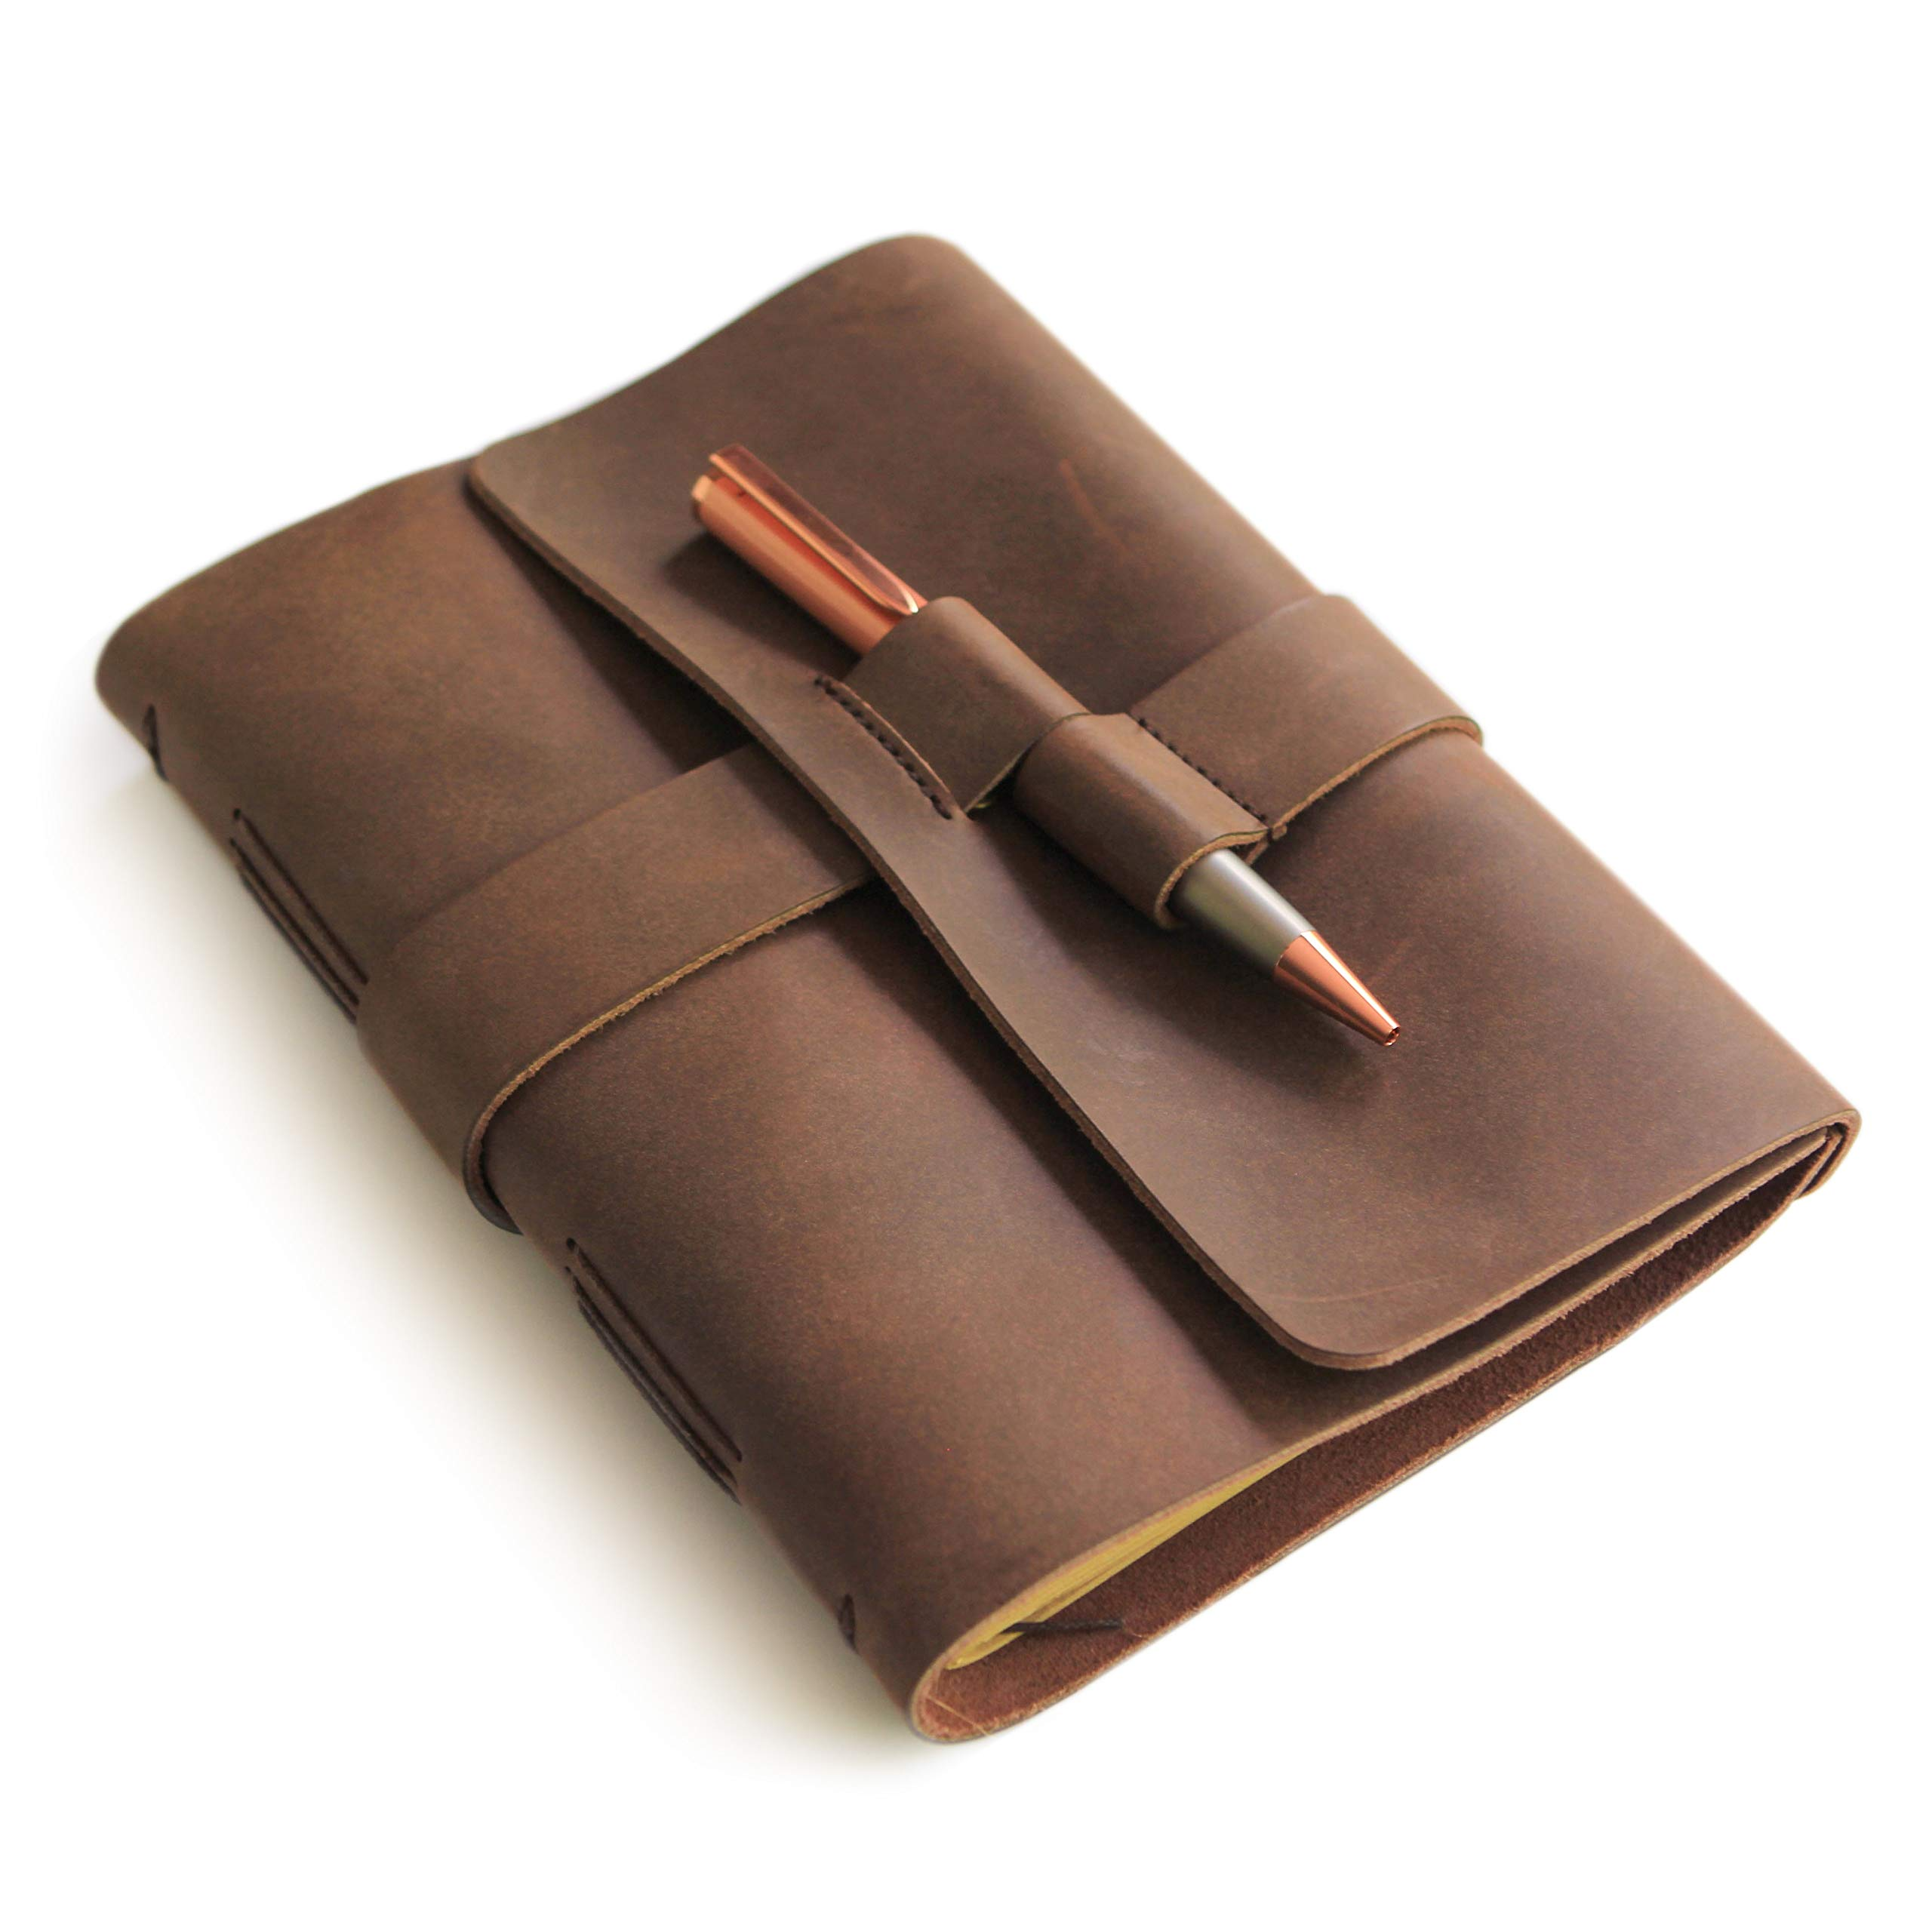 Leather Journal Diary with Premium Rose Gold Pen by Case Elegance